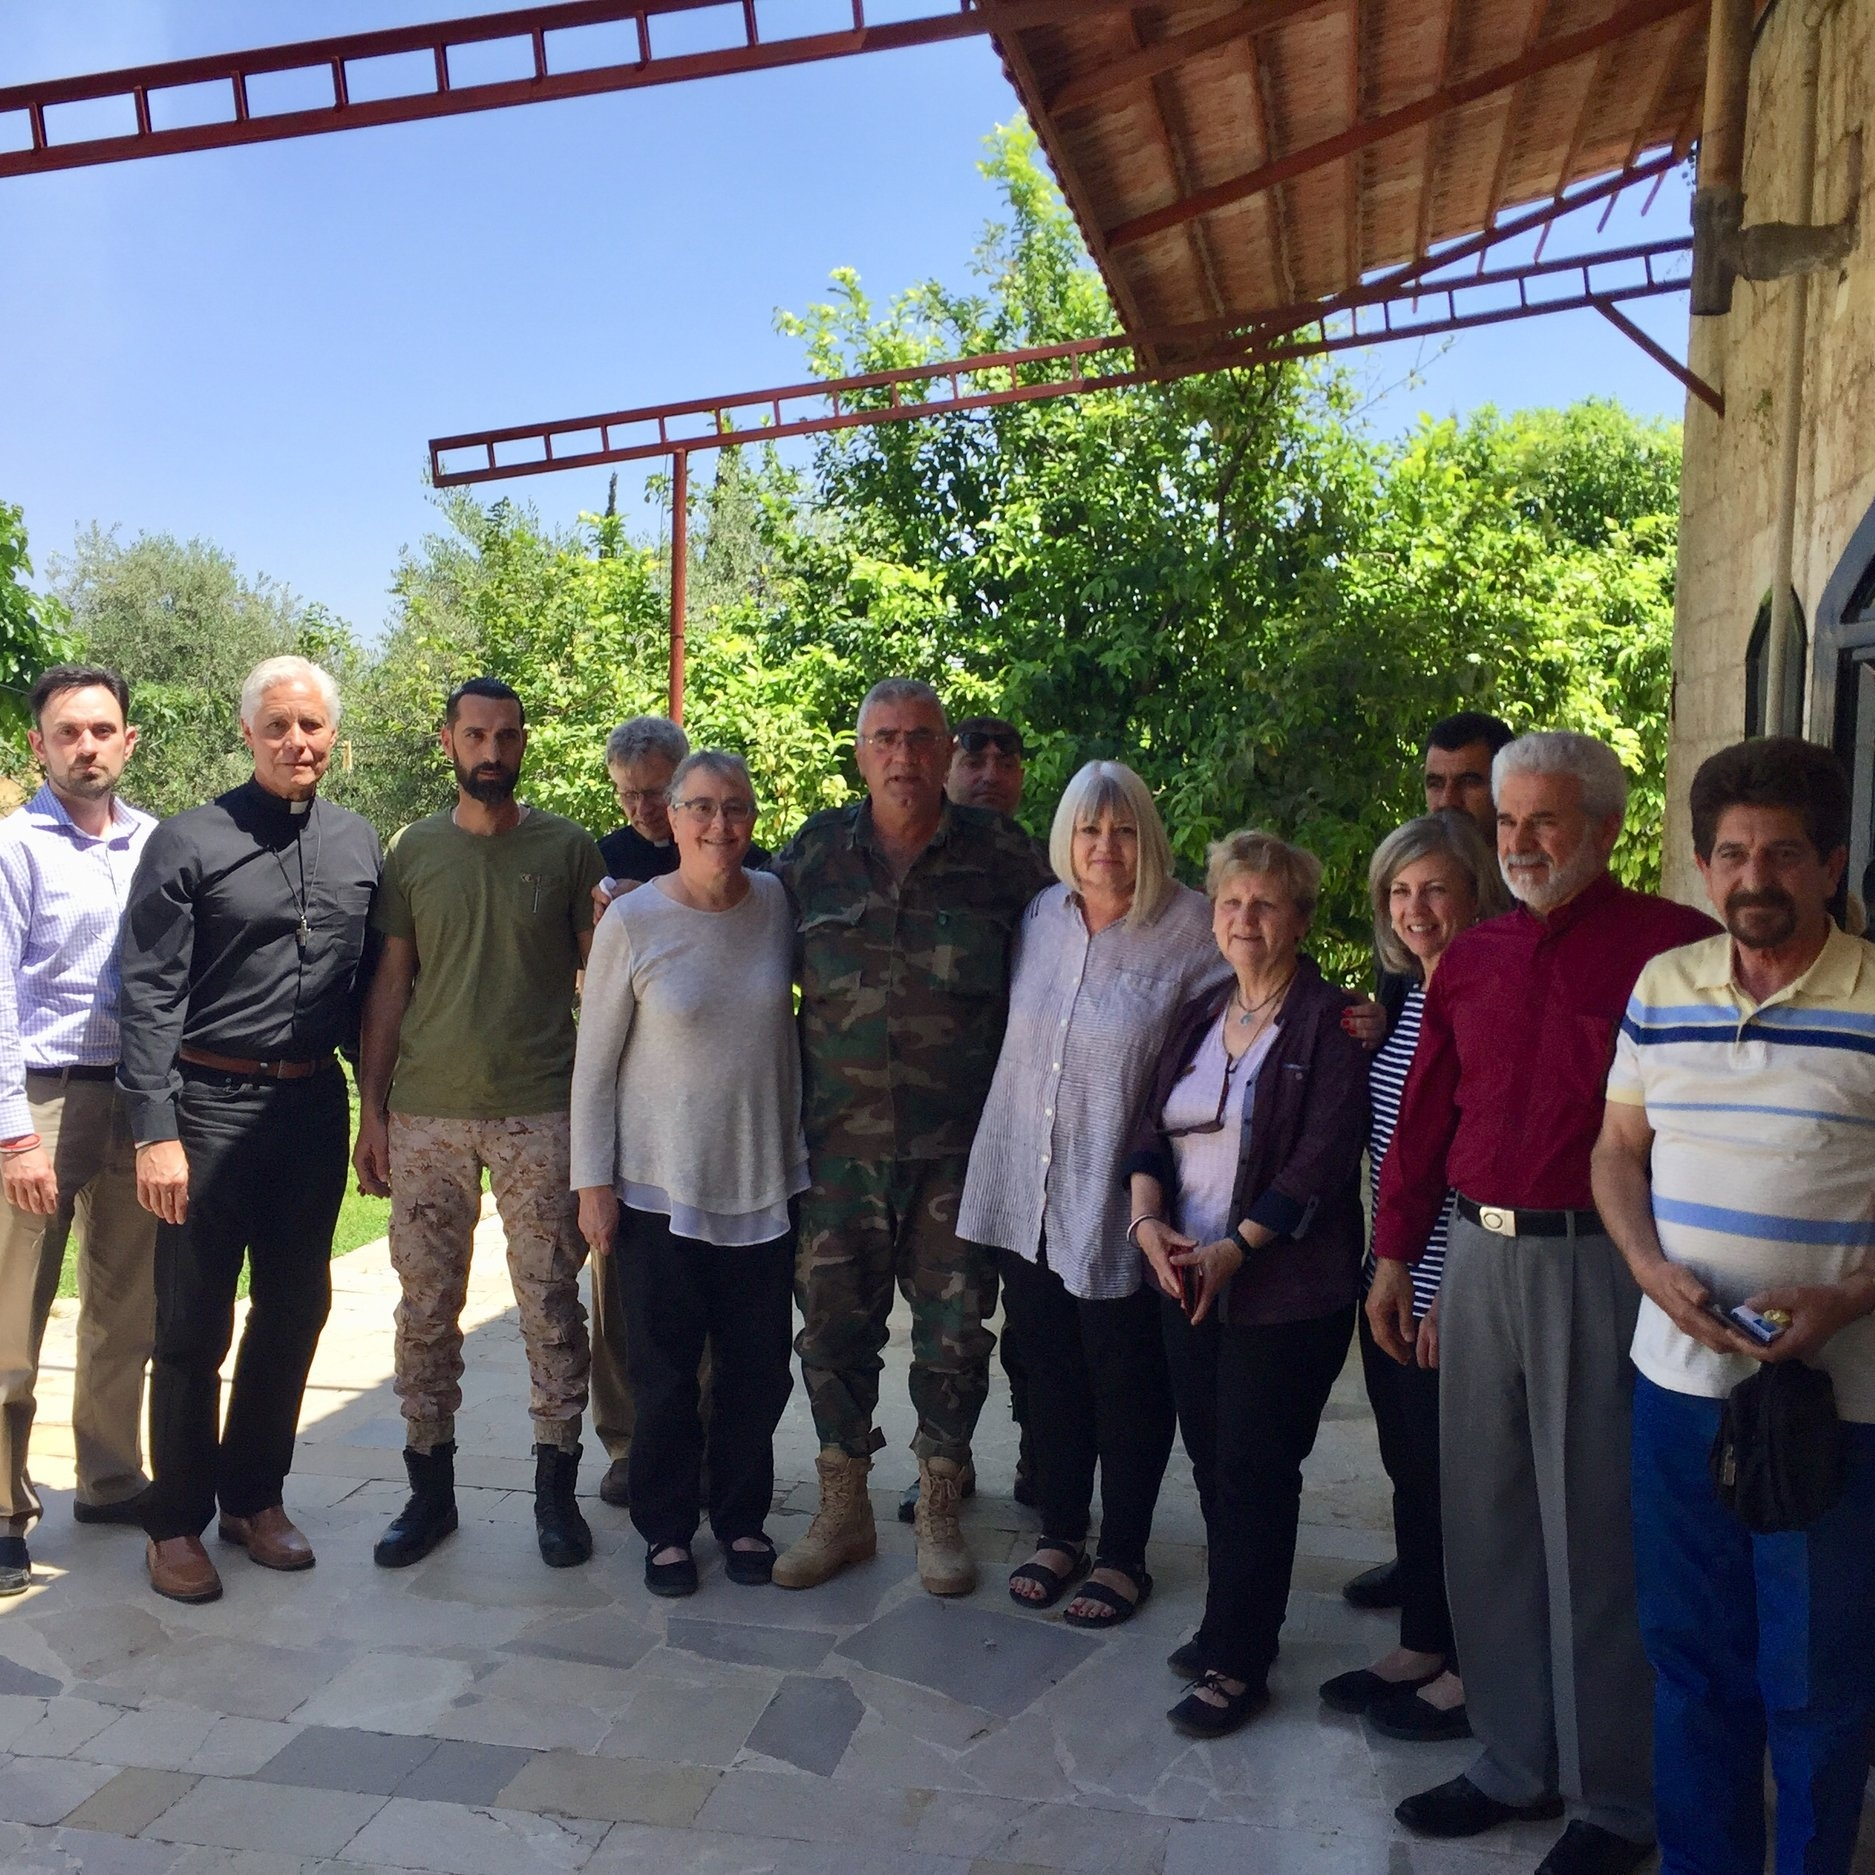 Gen. Simon of the Mahardeh defense unit surrounded by Outreach team, Rev. Ma'an is second from the right